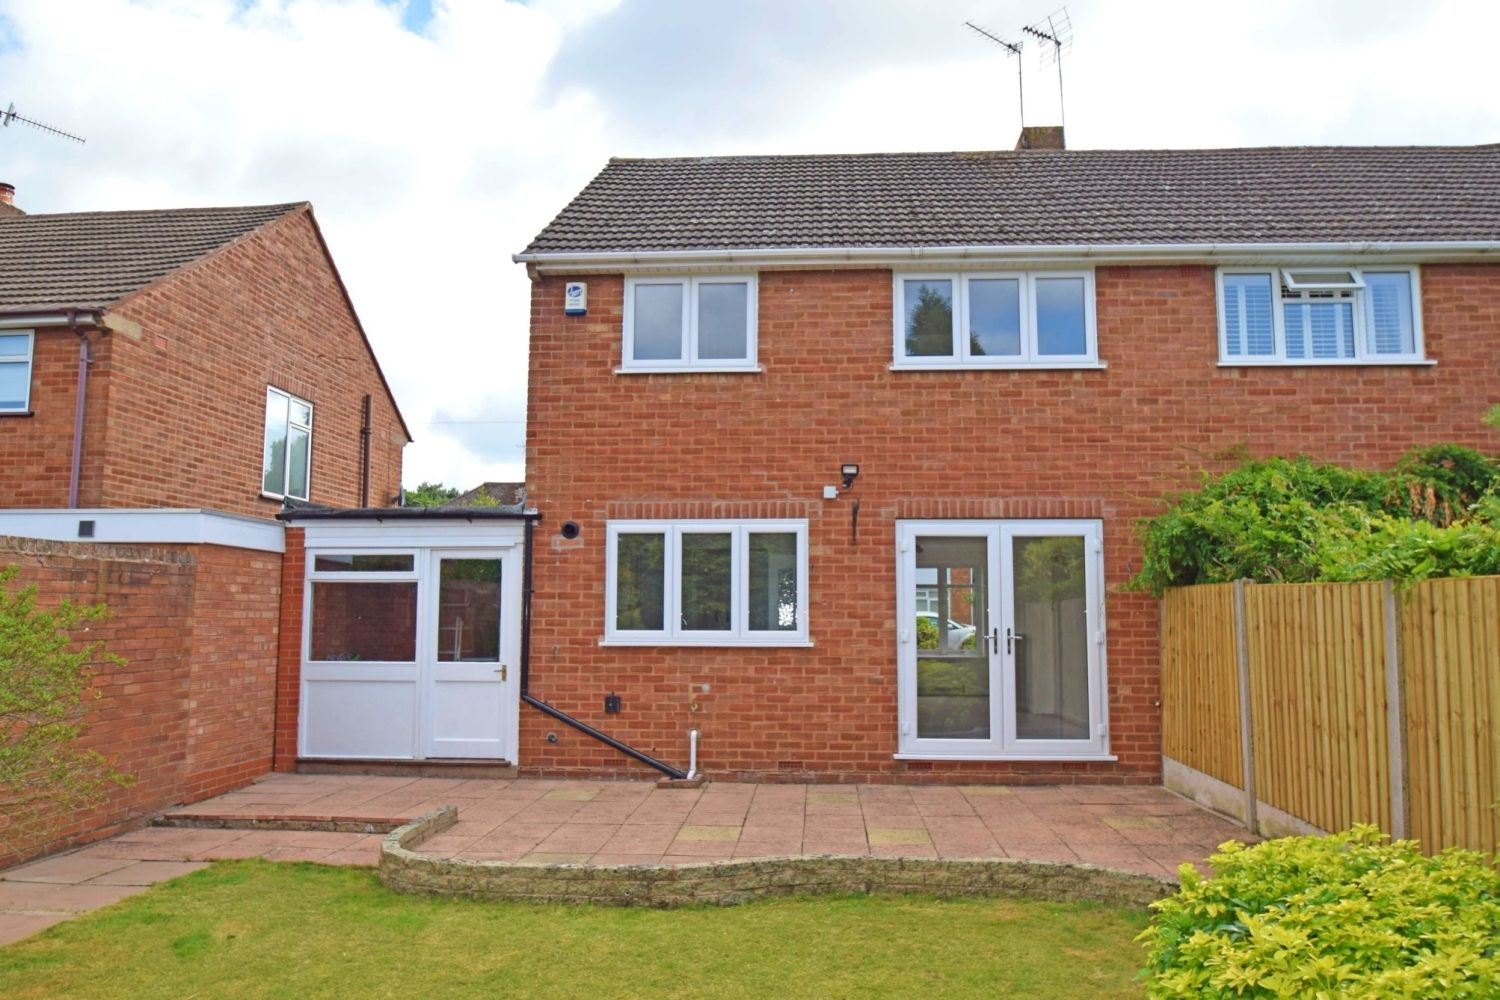 3 bed semi-detached for sale in Beachcroft Road, Wall Heath  - Property Image 12